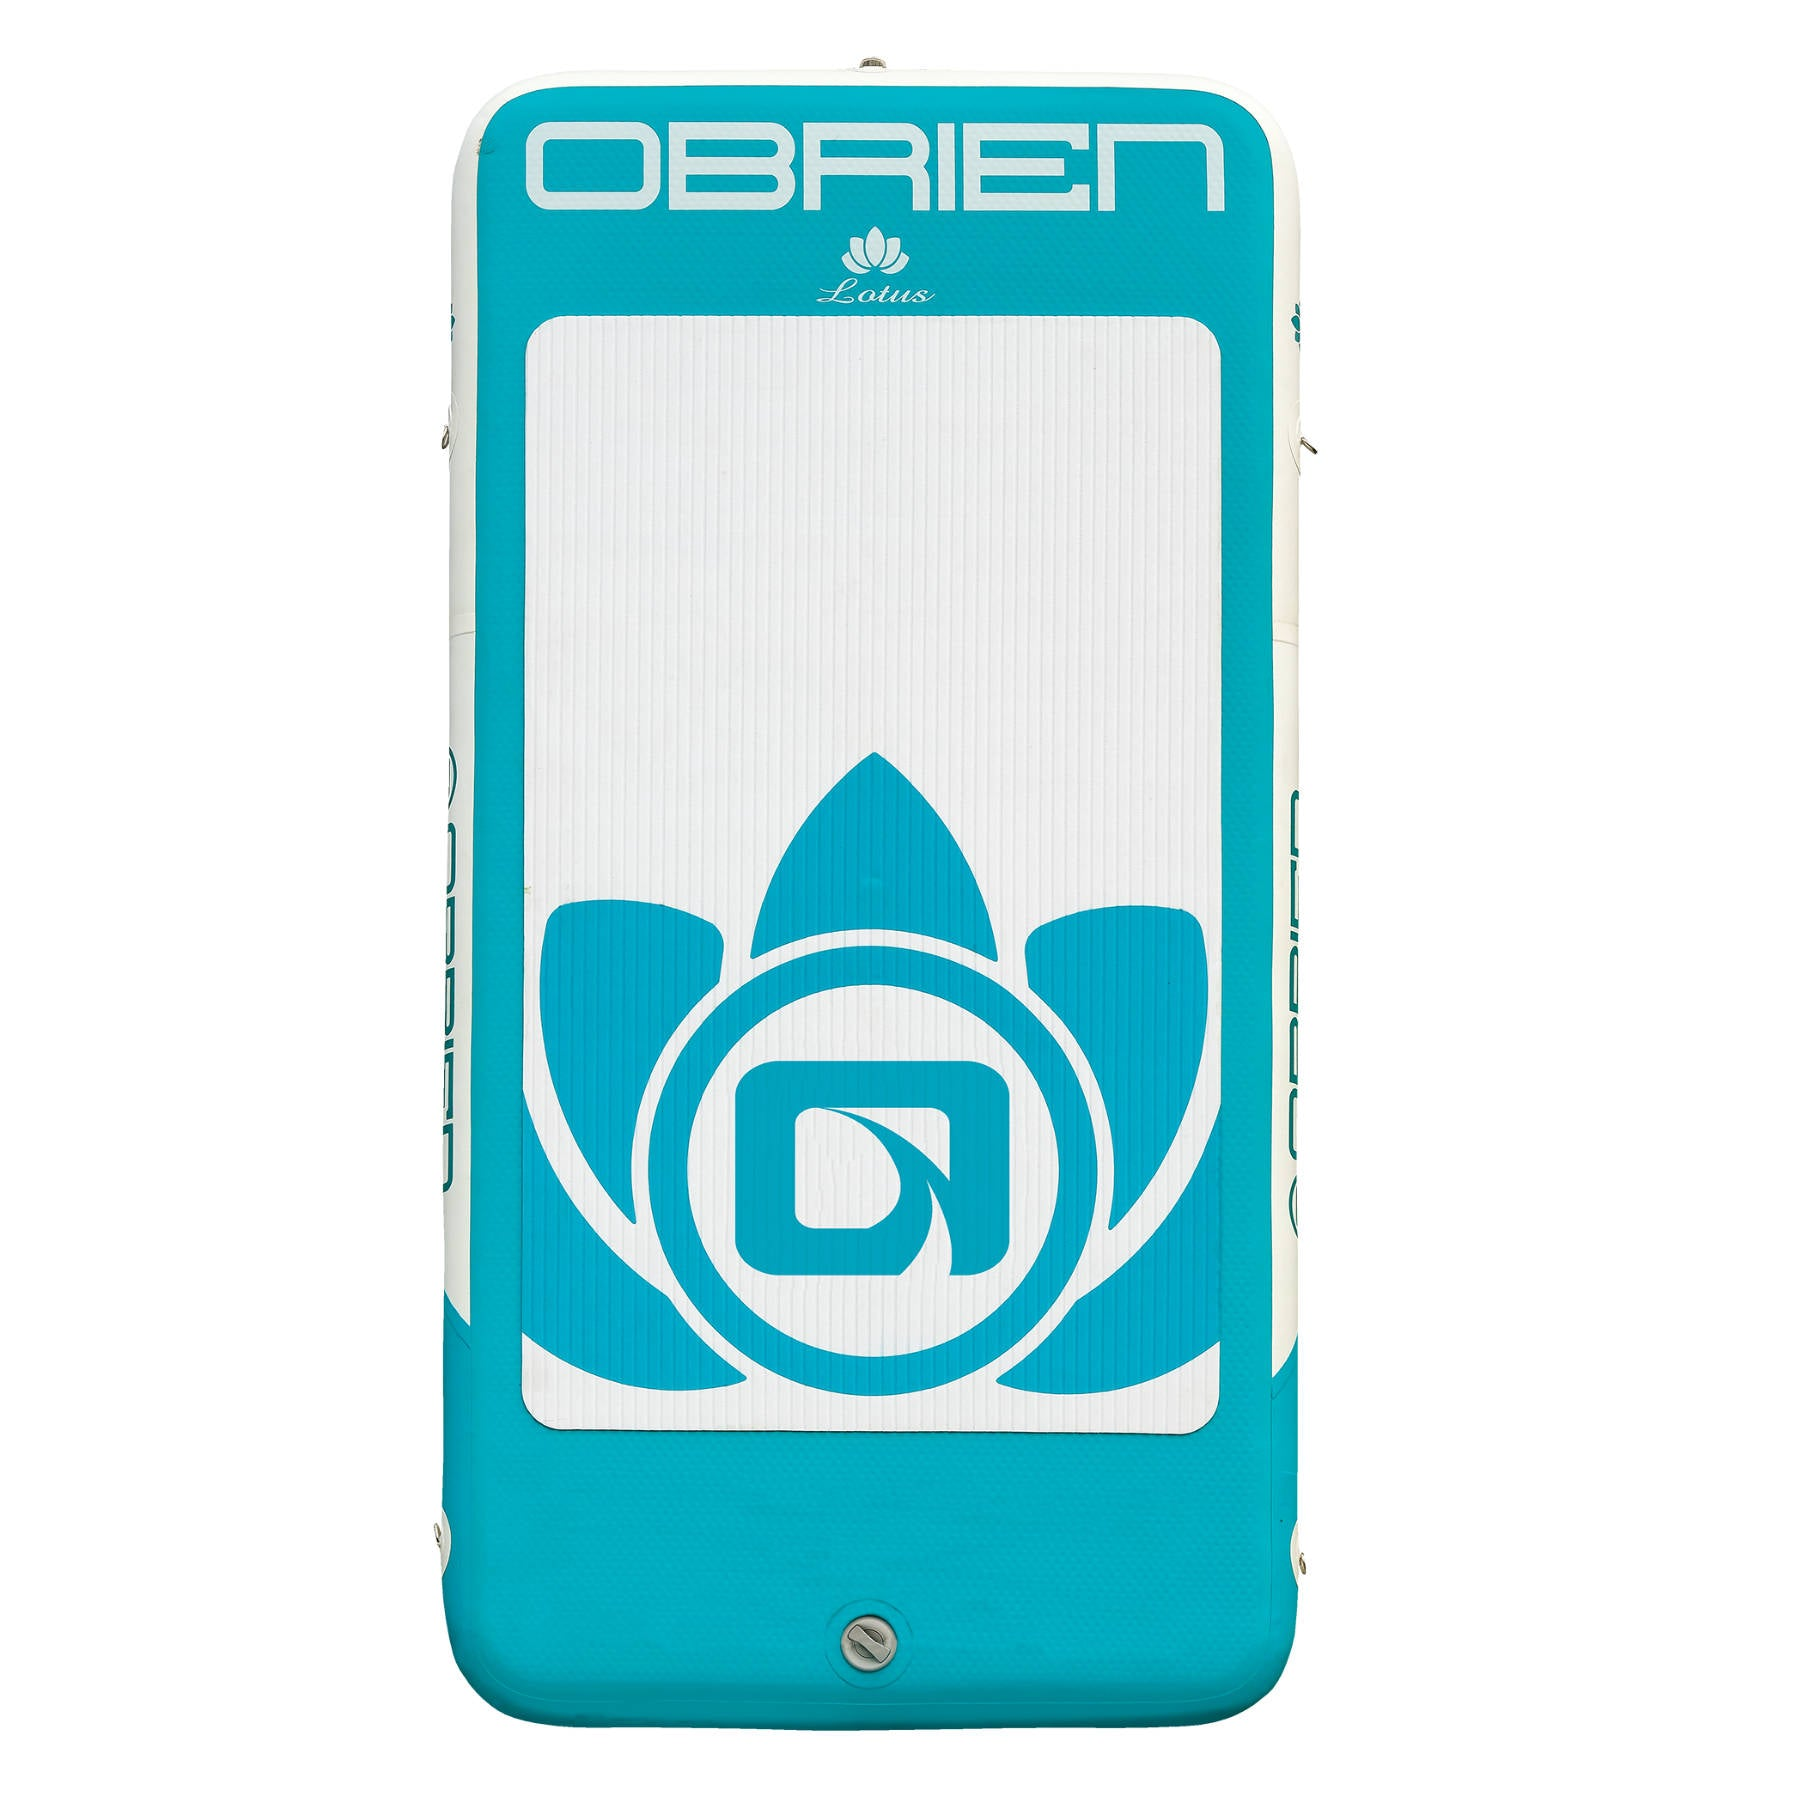 O'Brien Lotus yoga water mat at 88 Gear